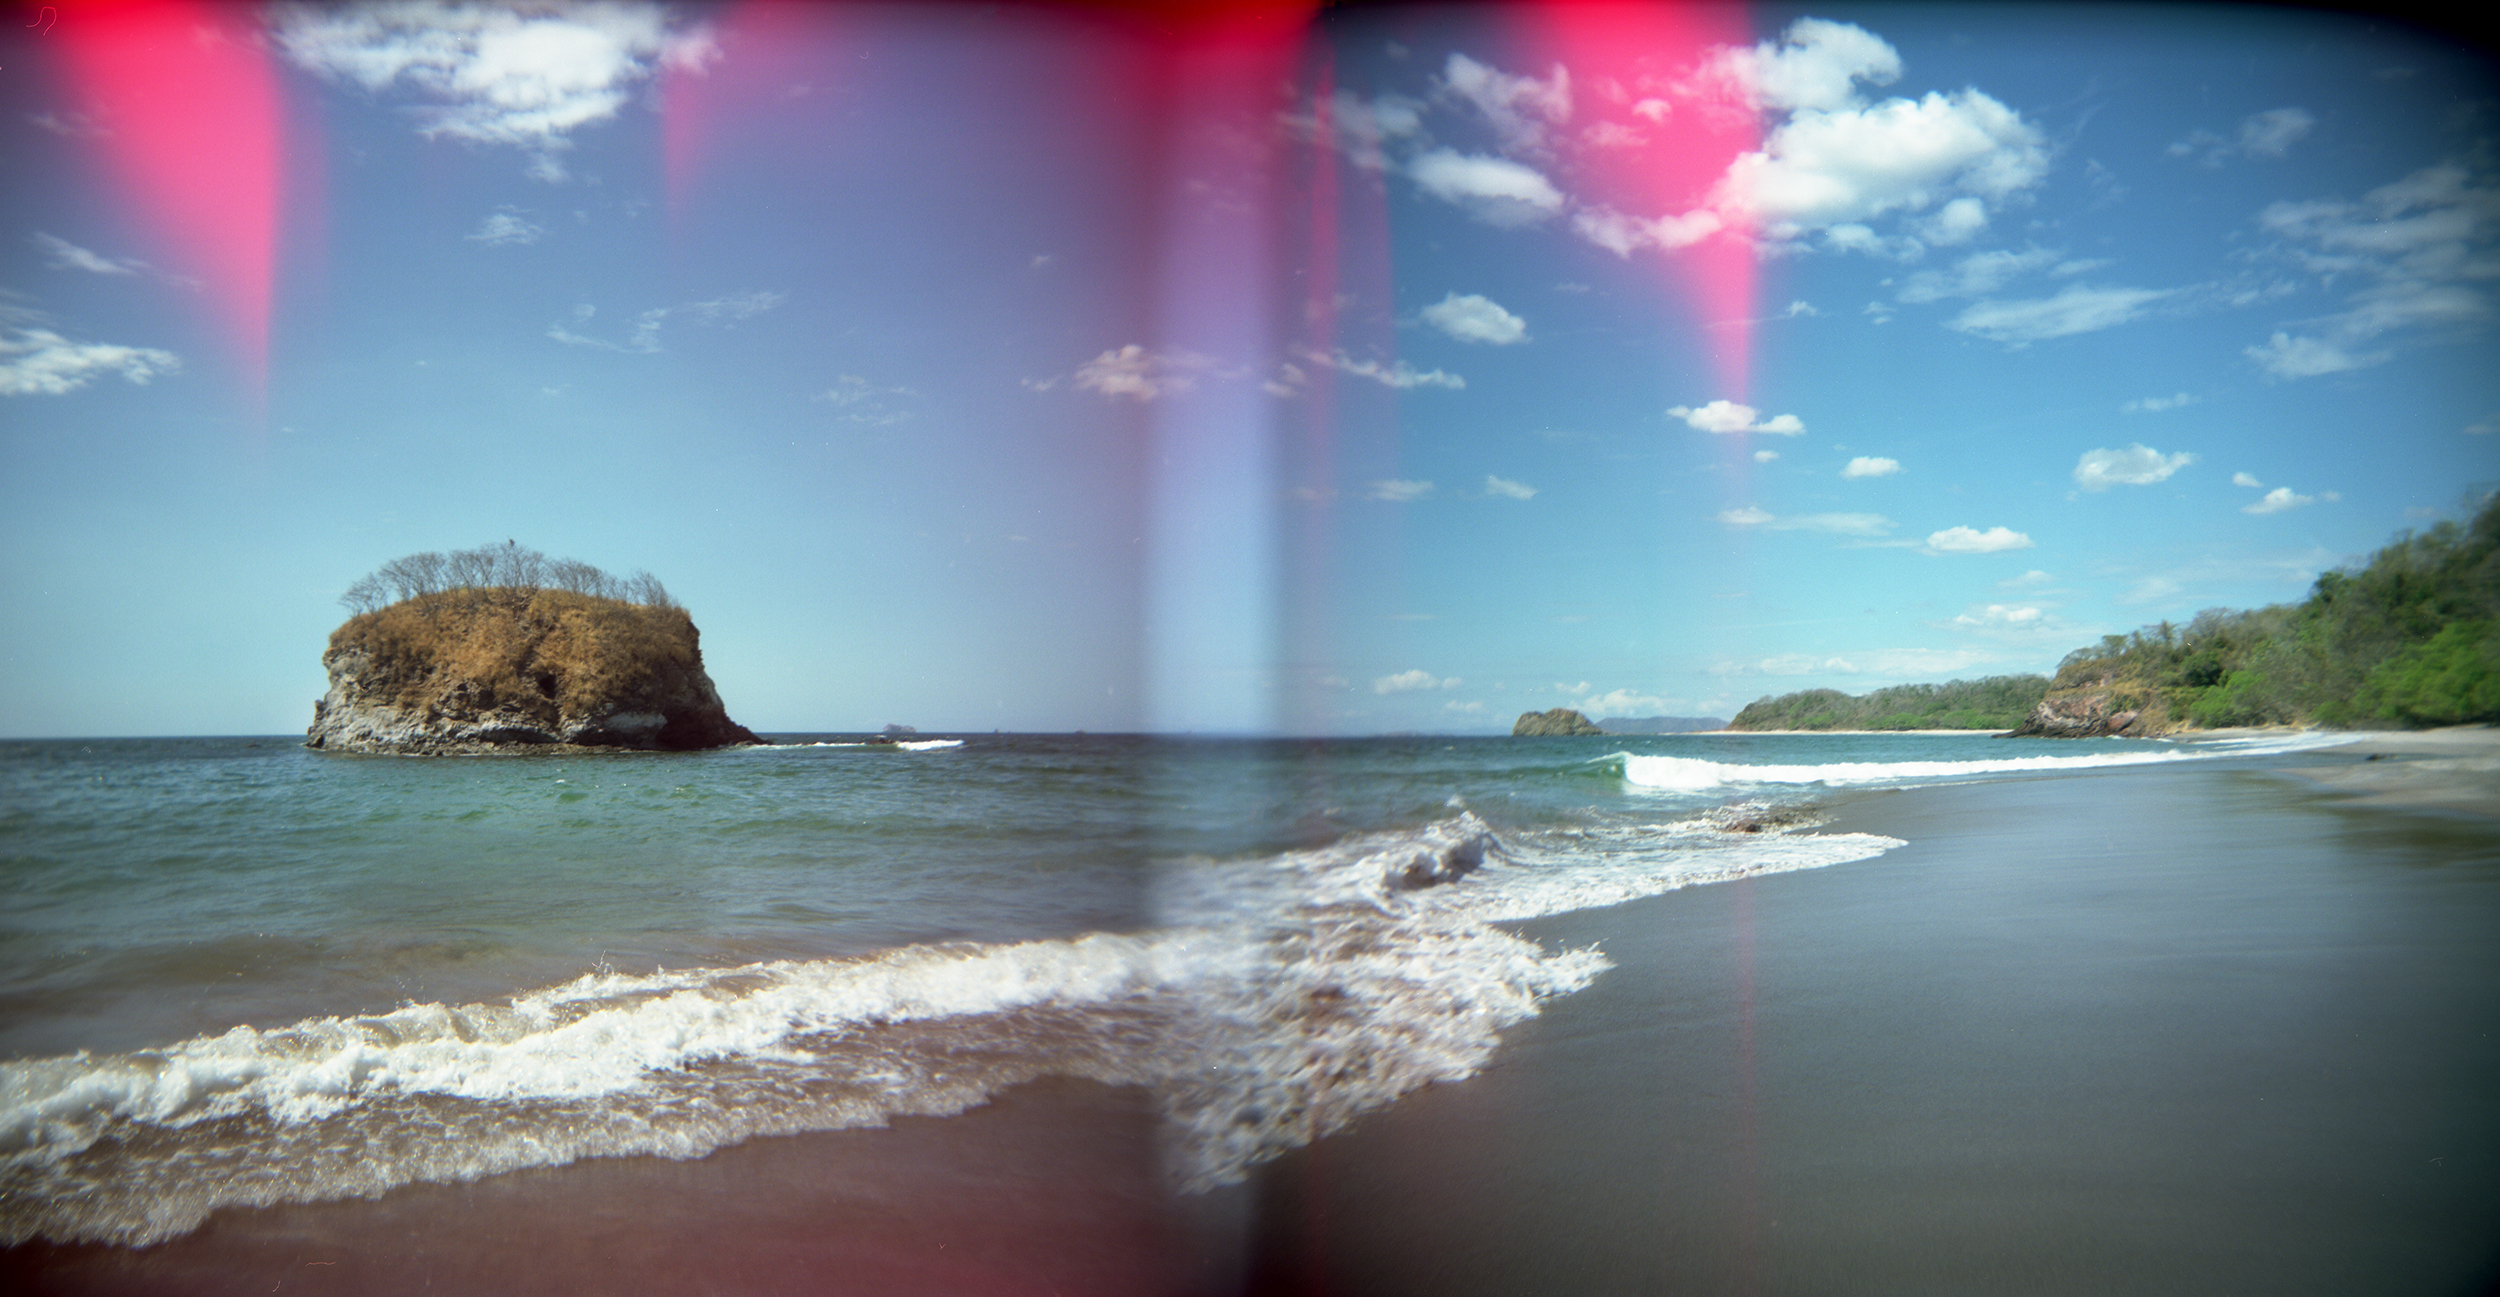 Playa Mina, Double Exposure